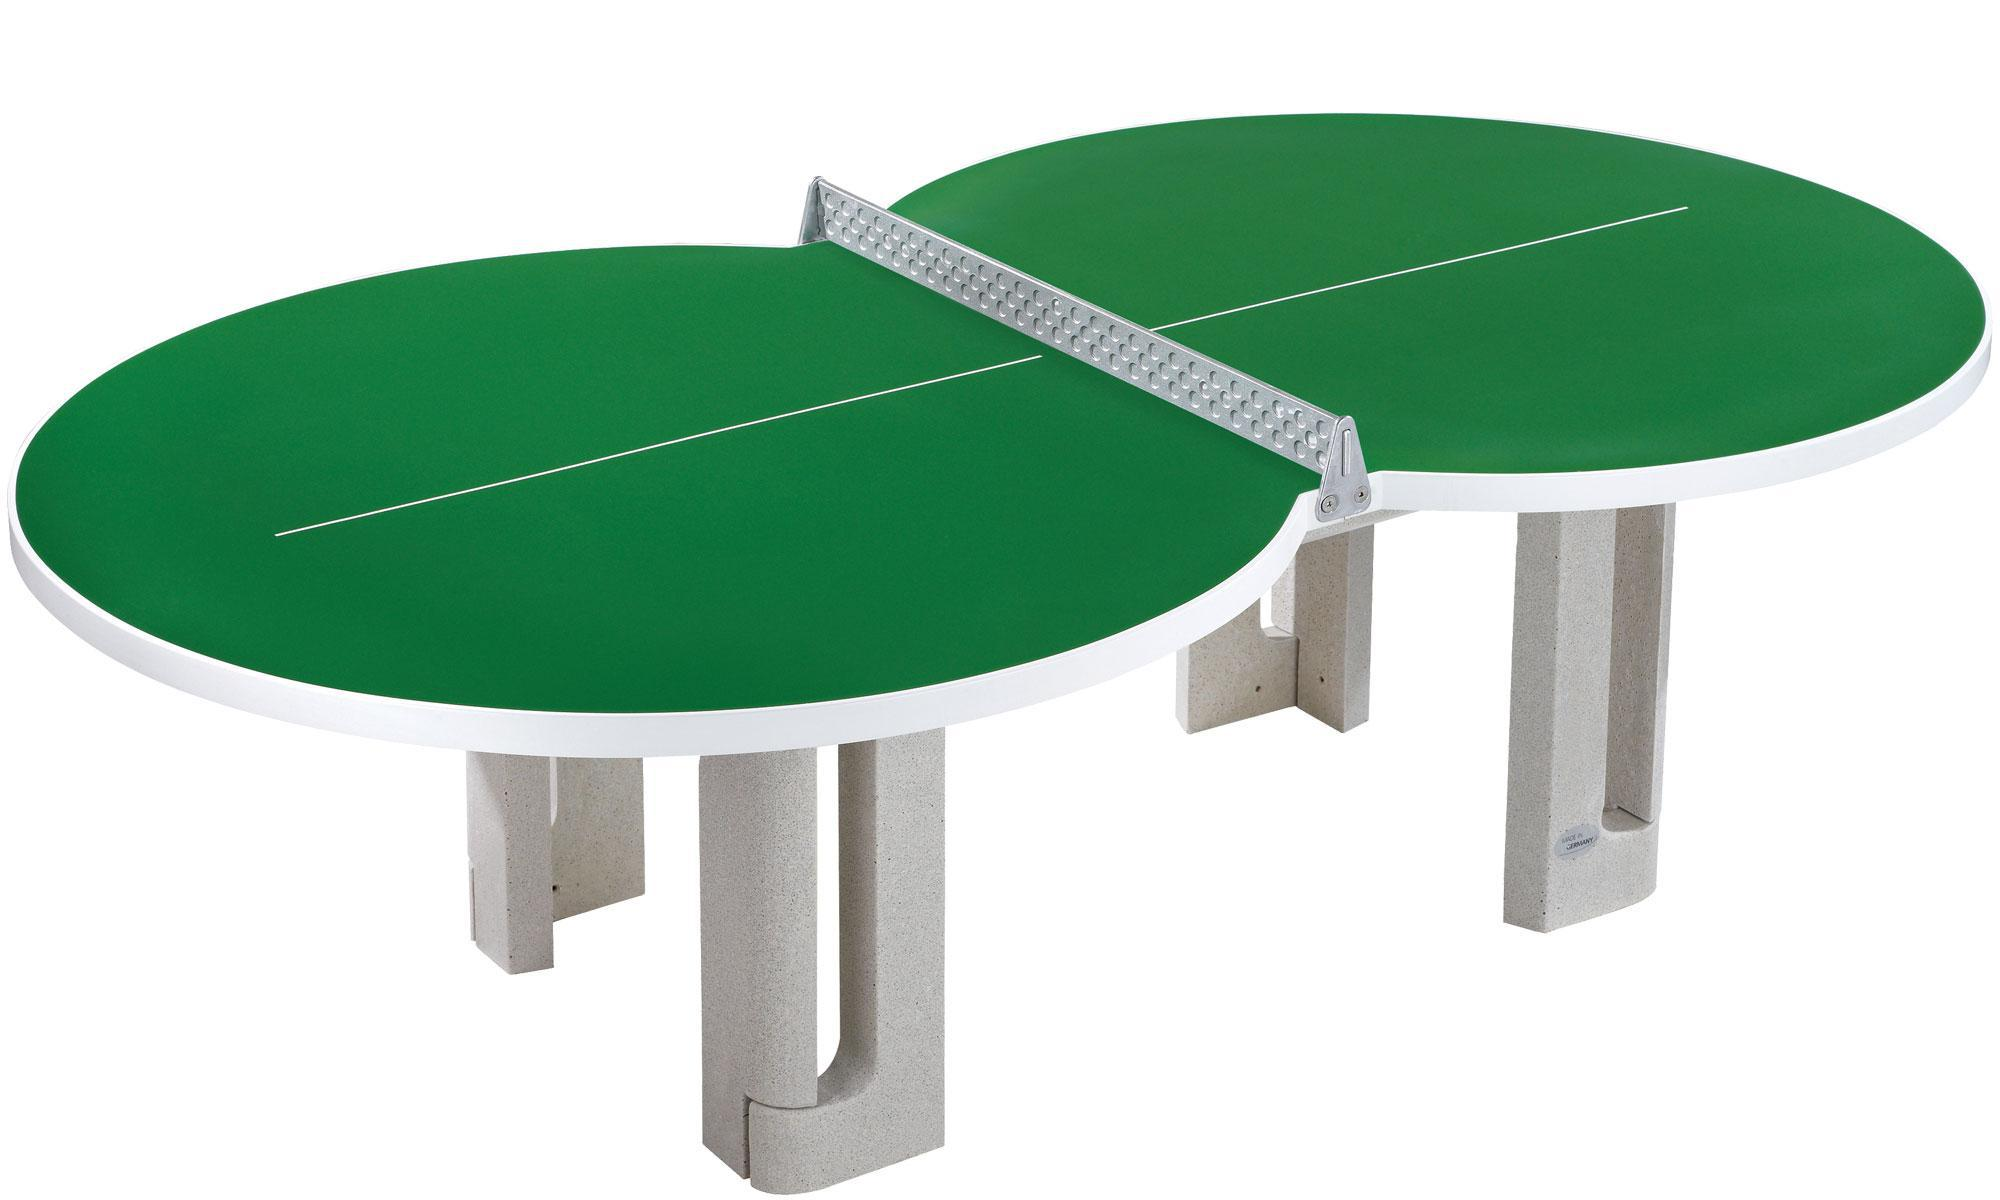 Butterfly figure eight concrete 25mm outdoor table tennis - Butterfly table tennis official website ...